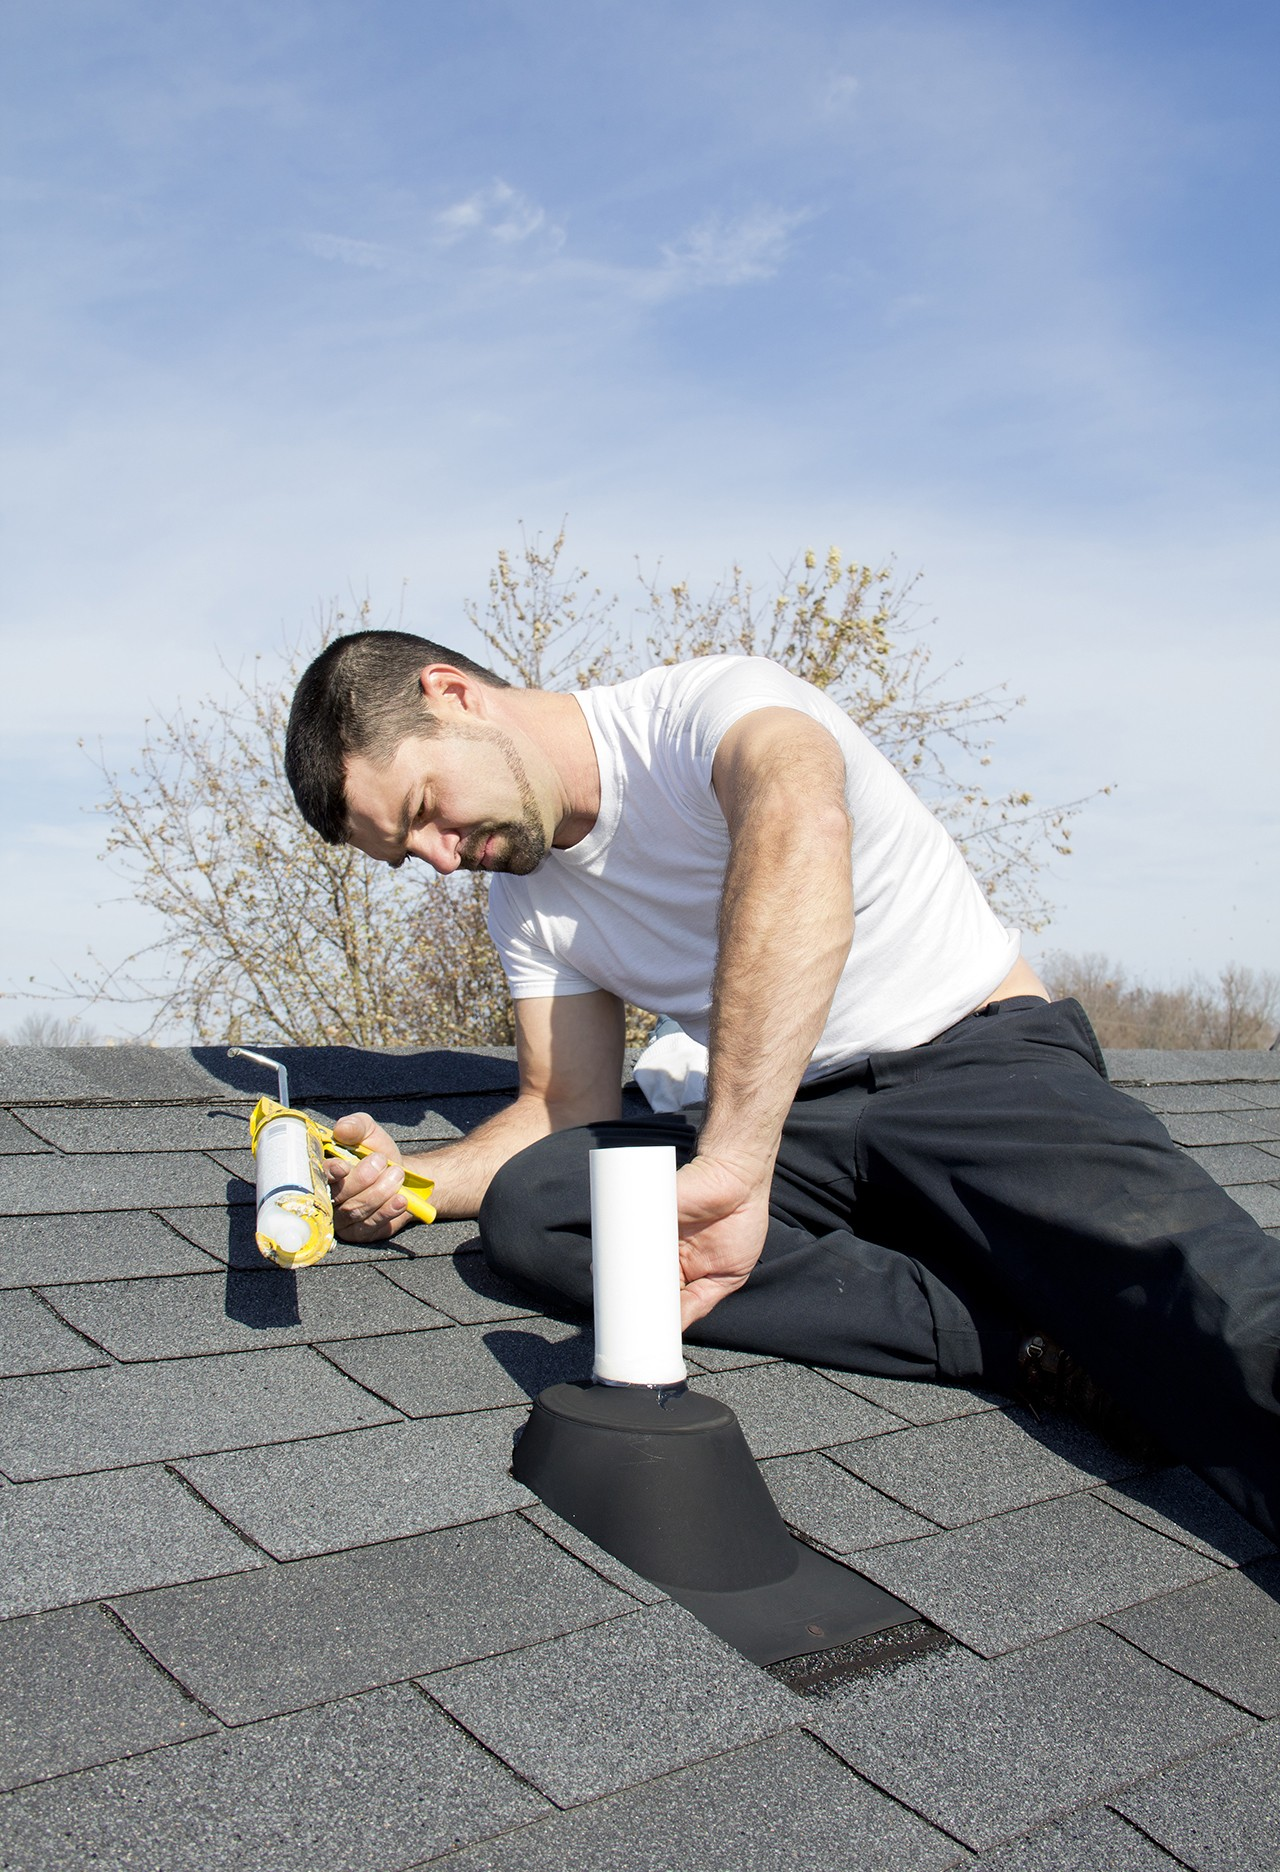 Sealant being used on roof